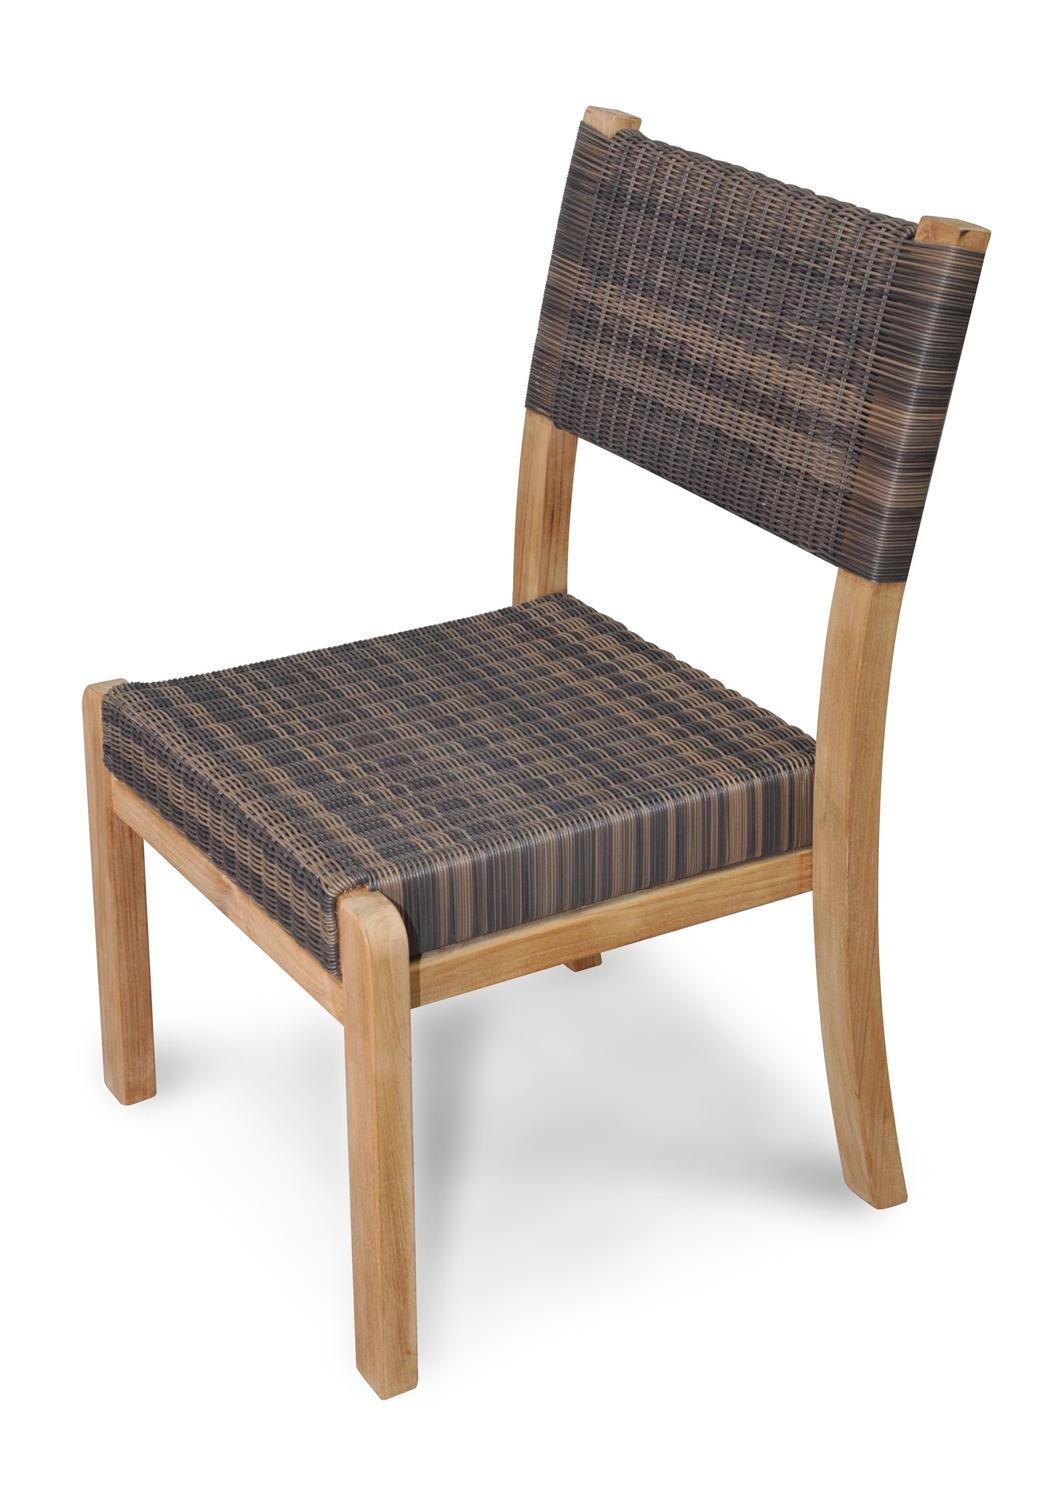 4 Chair Patio Set: Set Of 4 Natural Finish Teak Outdoor Patio Wood And Wicker